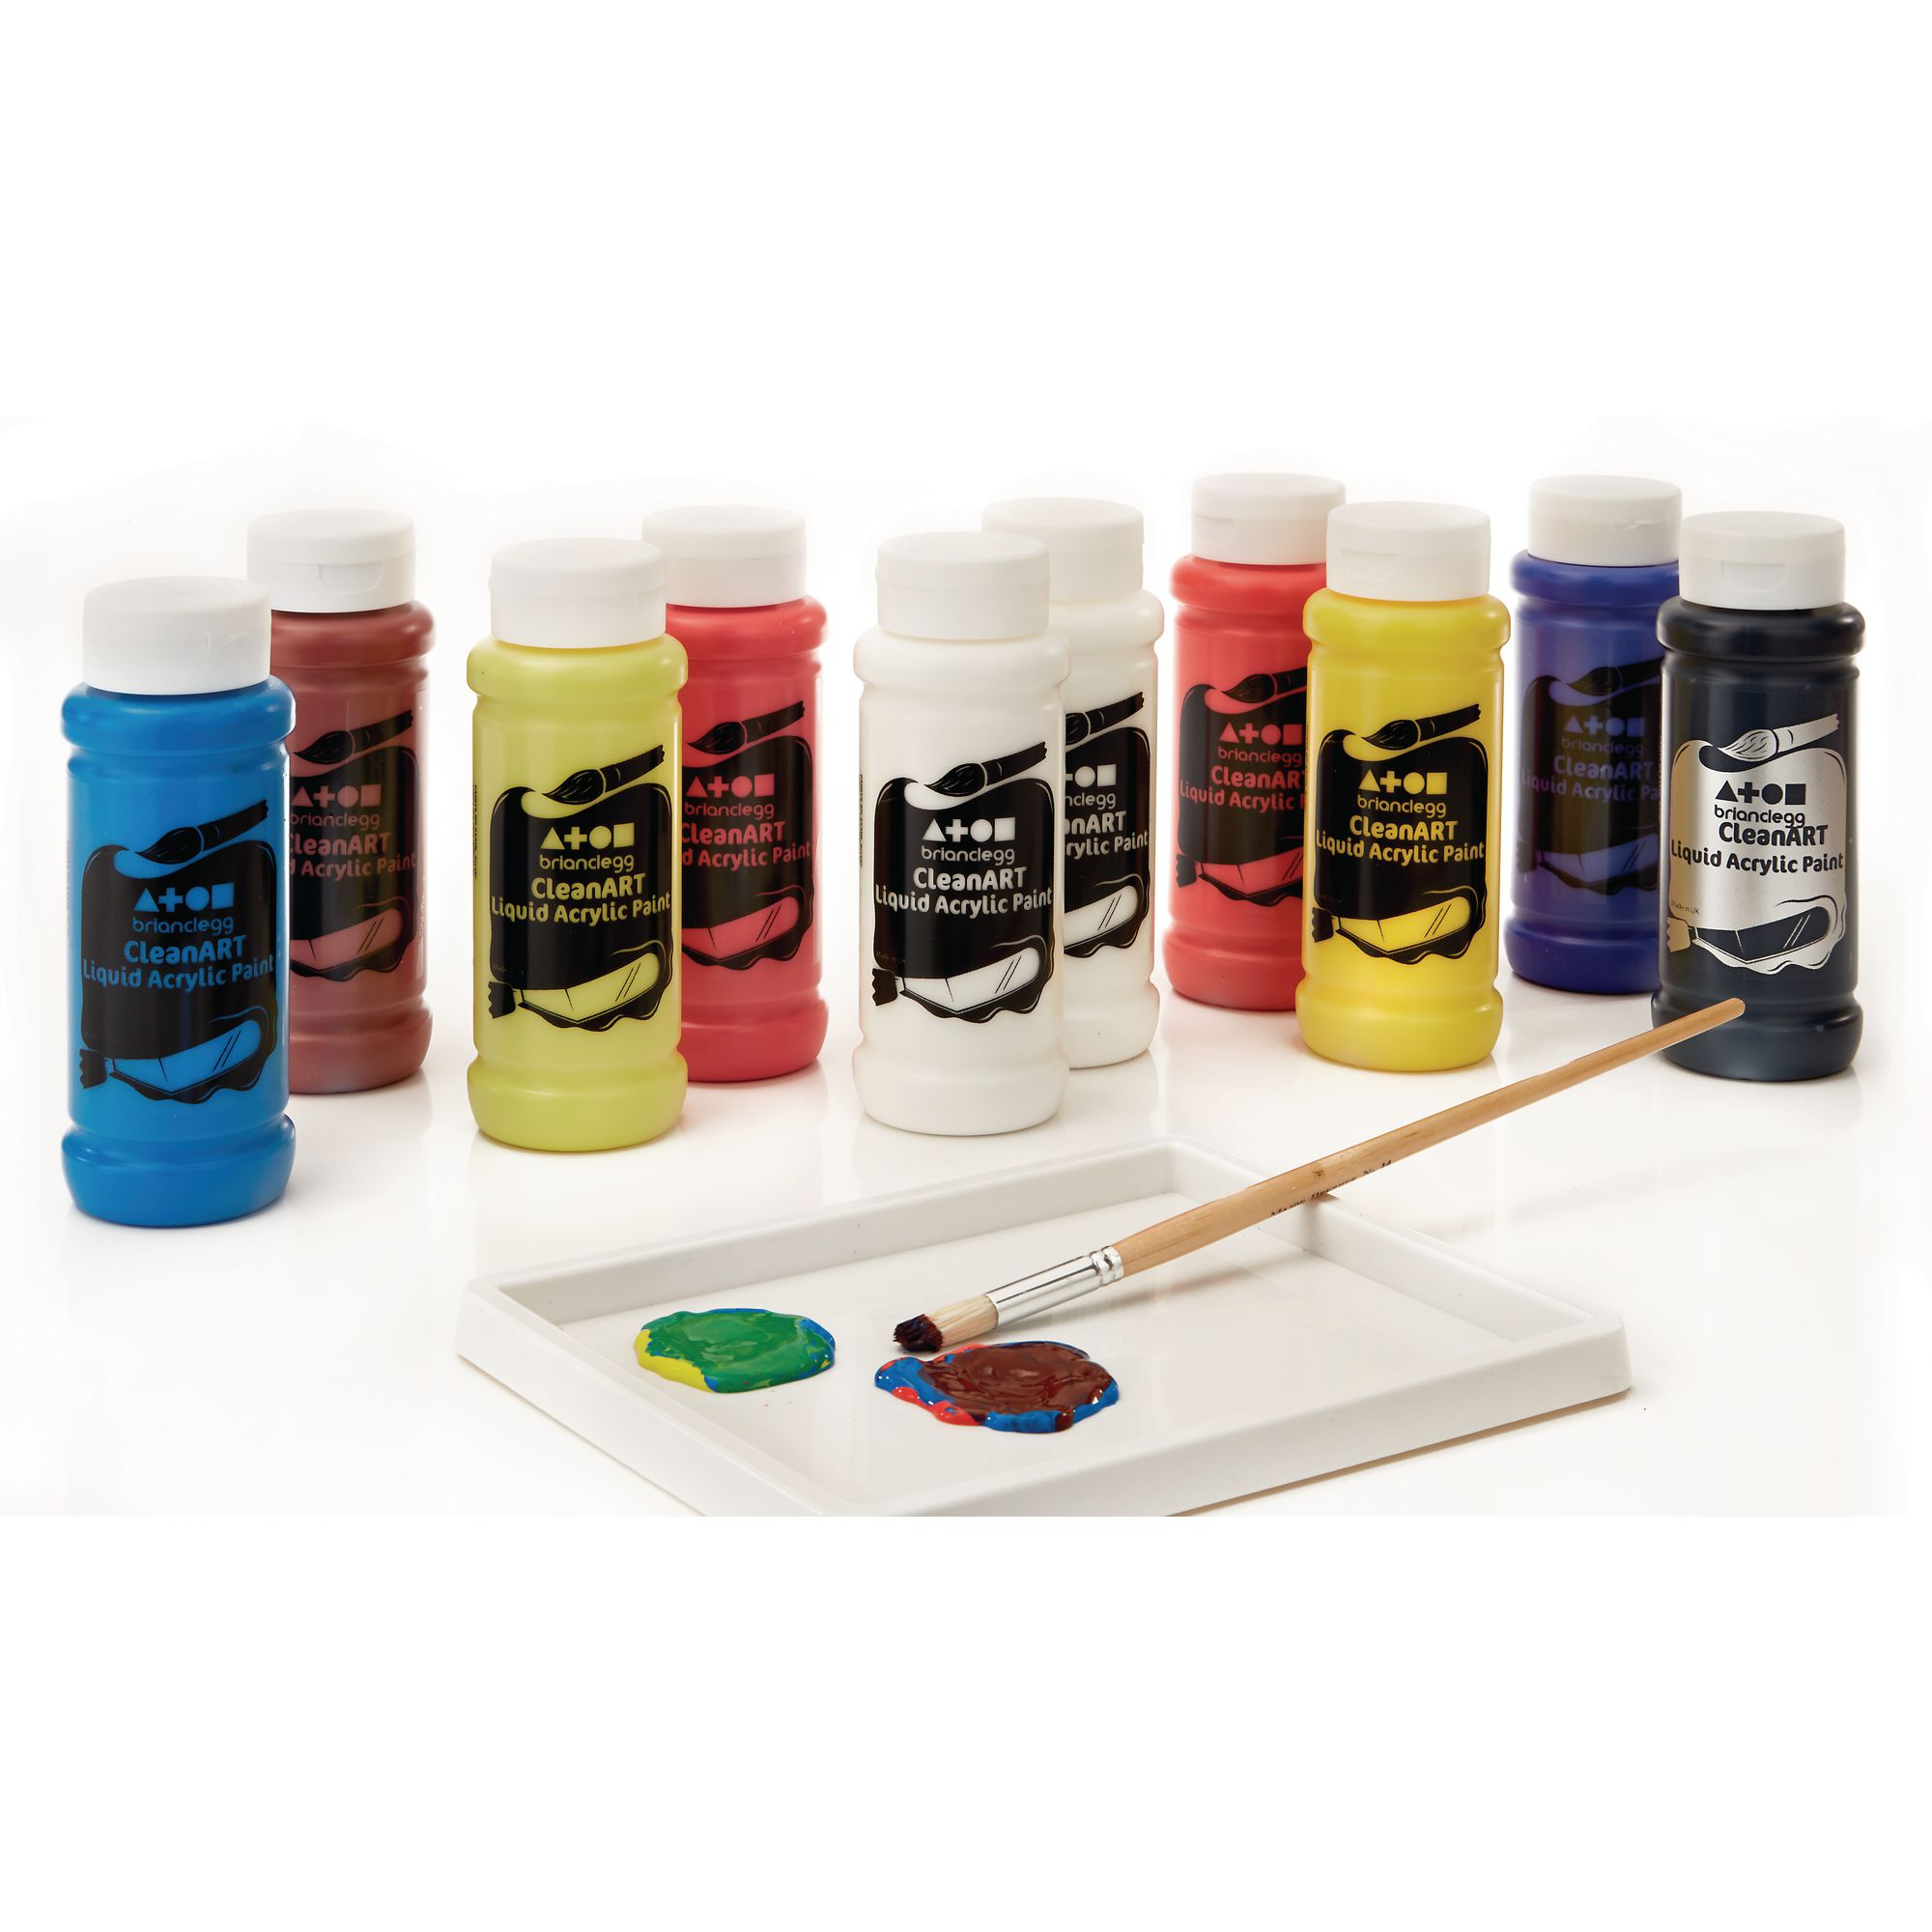 Hc156734 Brian Clegg Colour Mixing Set Acrylic Paint In Assorted 500ml Bottle Findel International